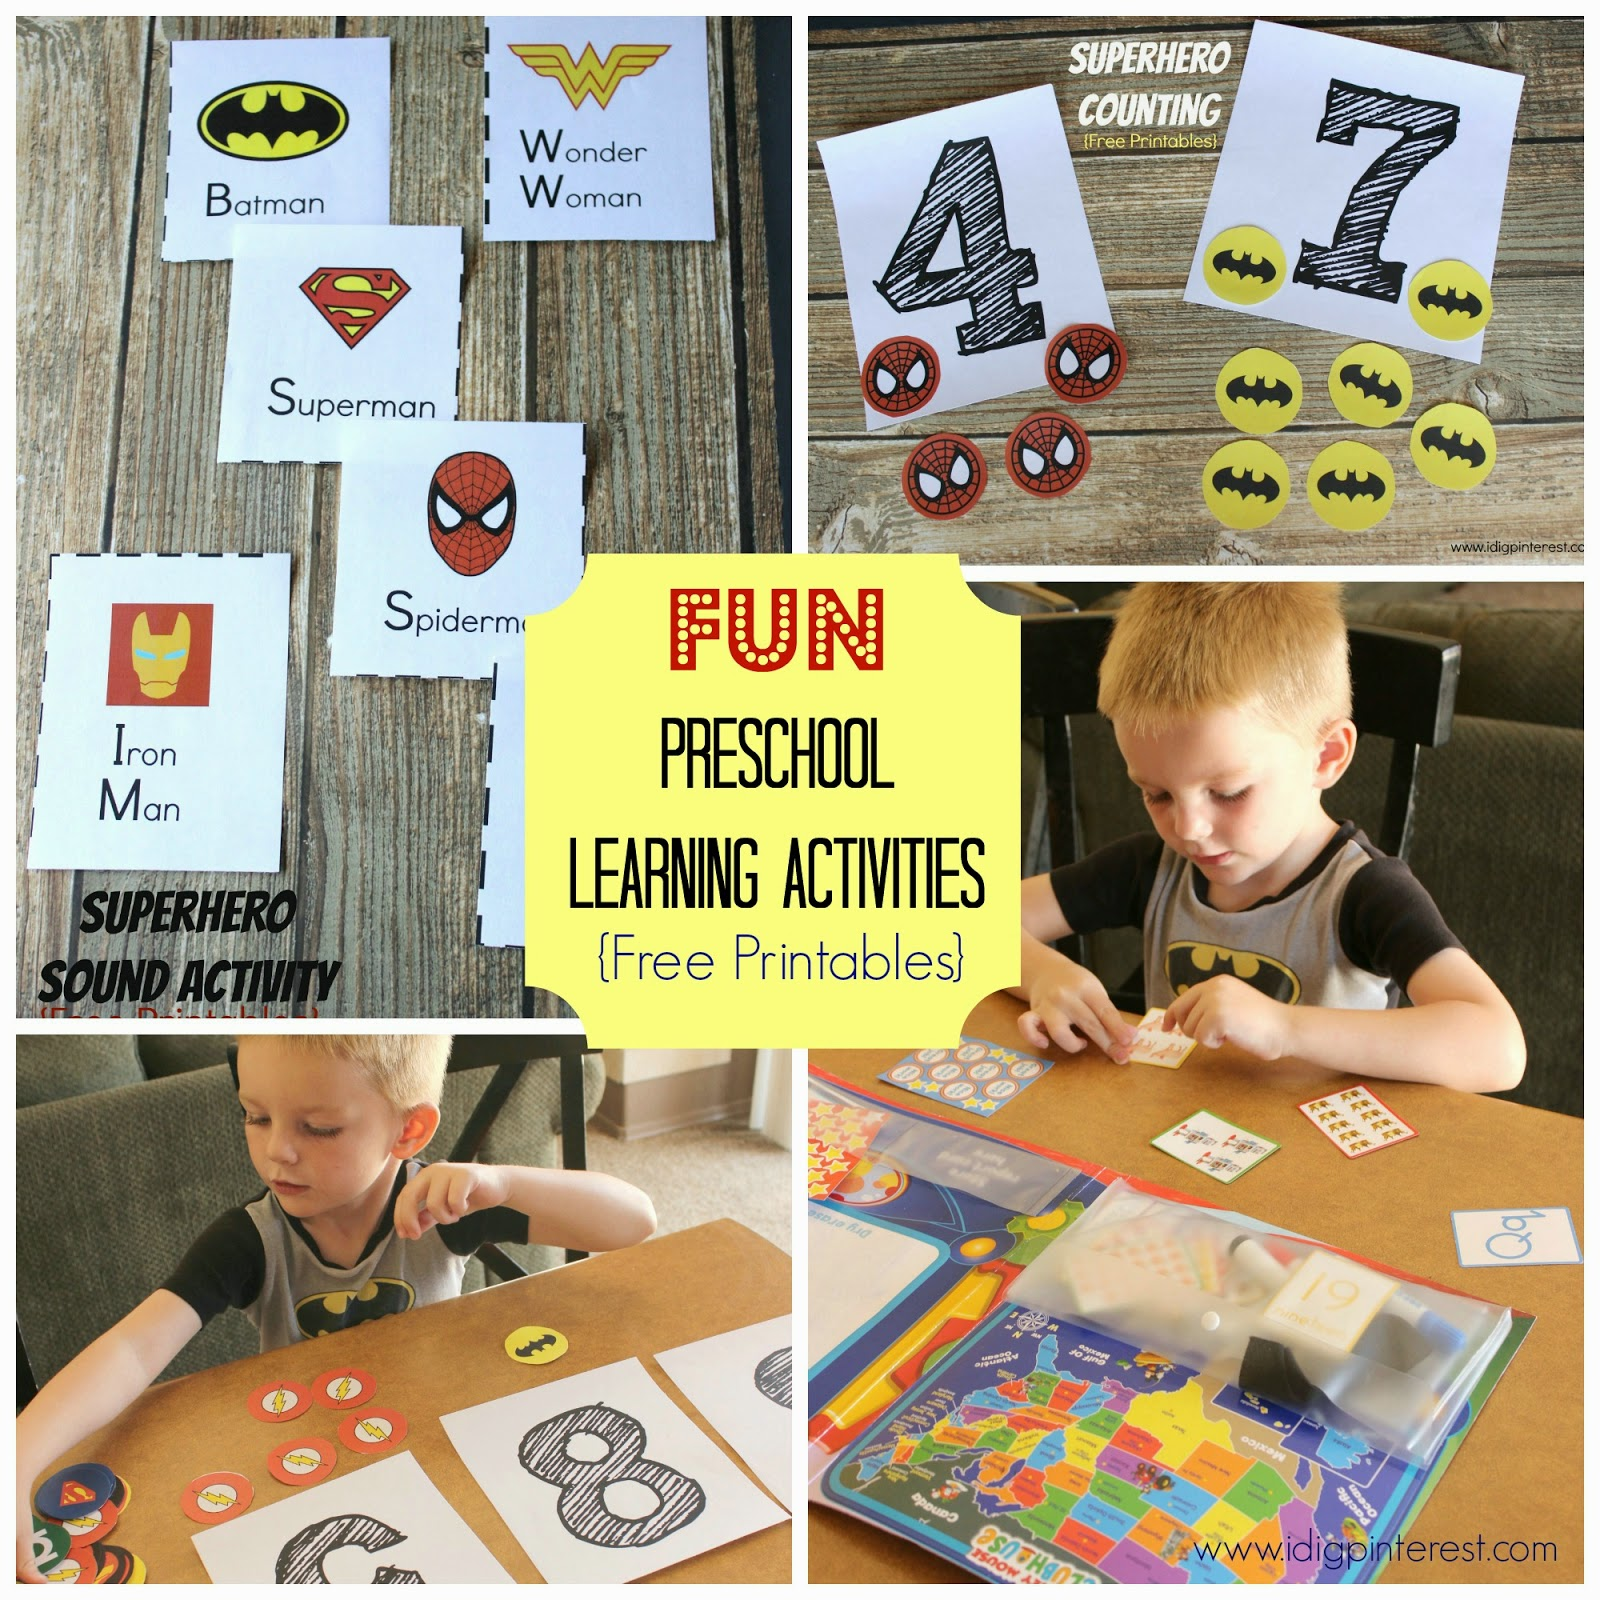 I Dig Pinterest Make Learning Fun With Disney Jr Preschool Superhero Sounds Amp Counting Free